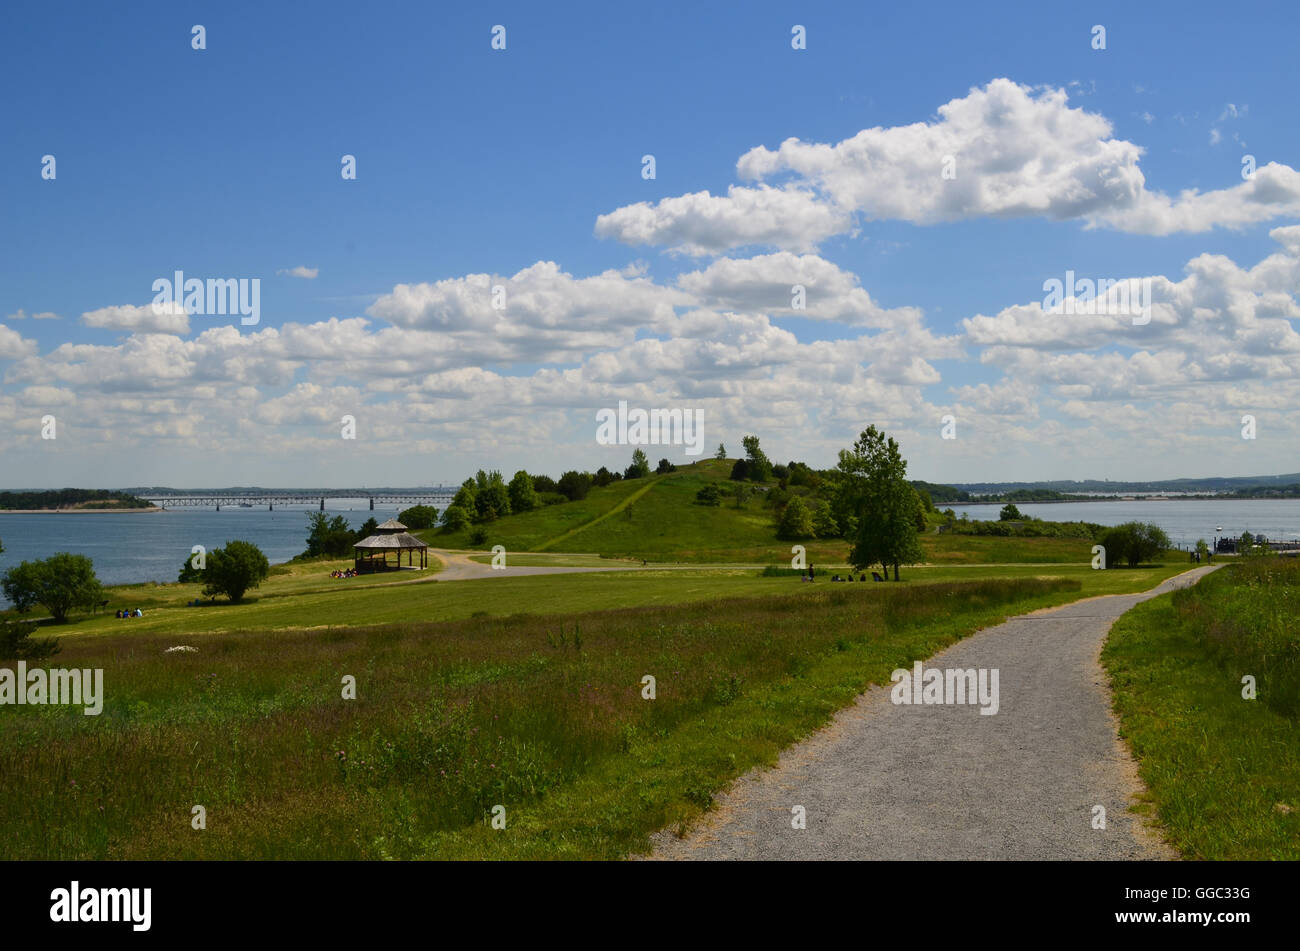 Perfect day on the hiking trail on Spectacle Island in Boston. - Stock Image